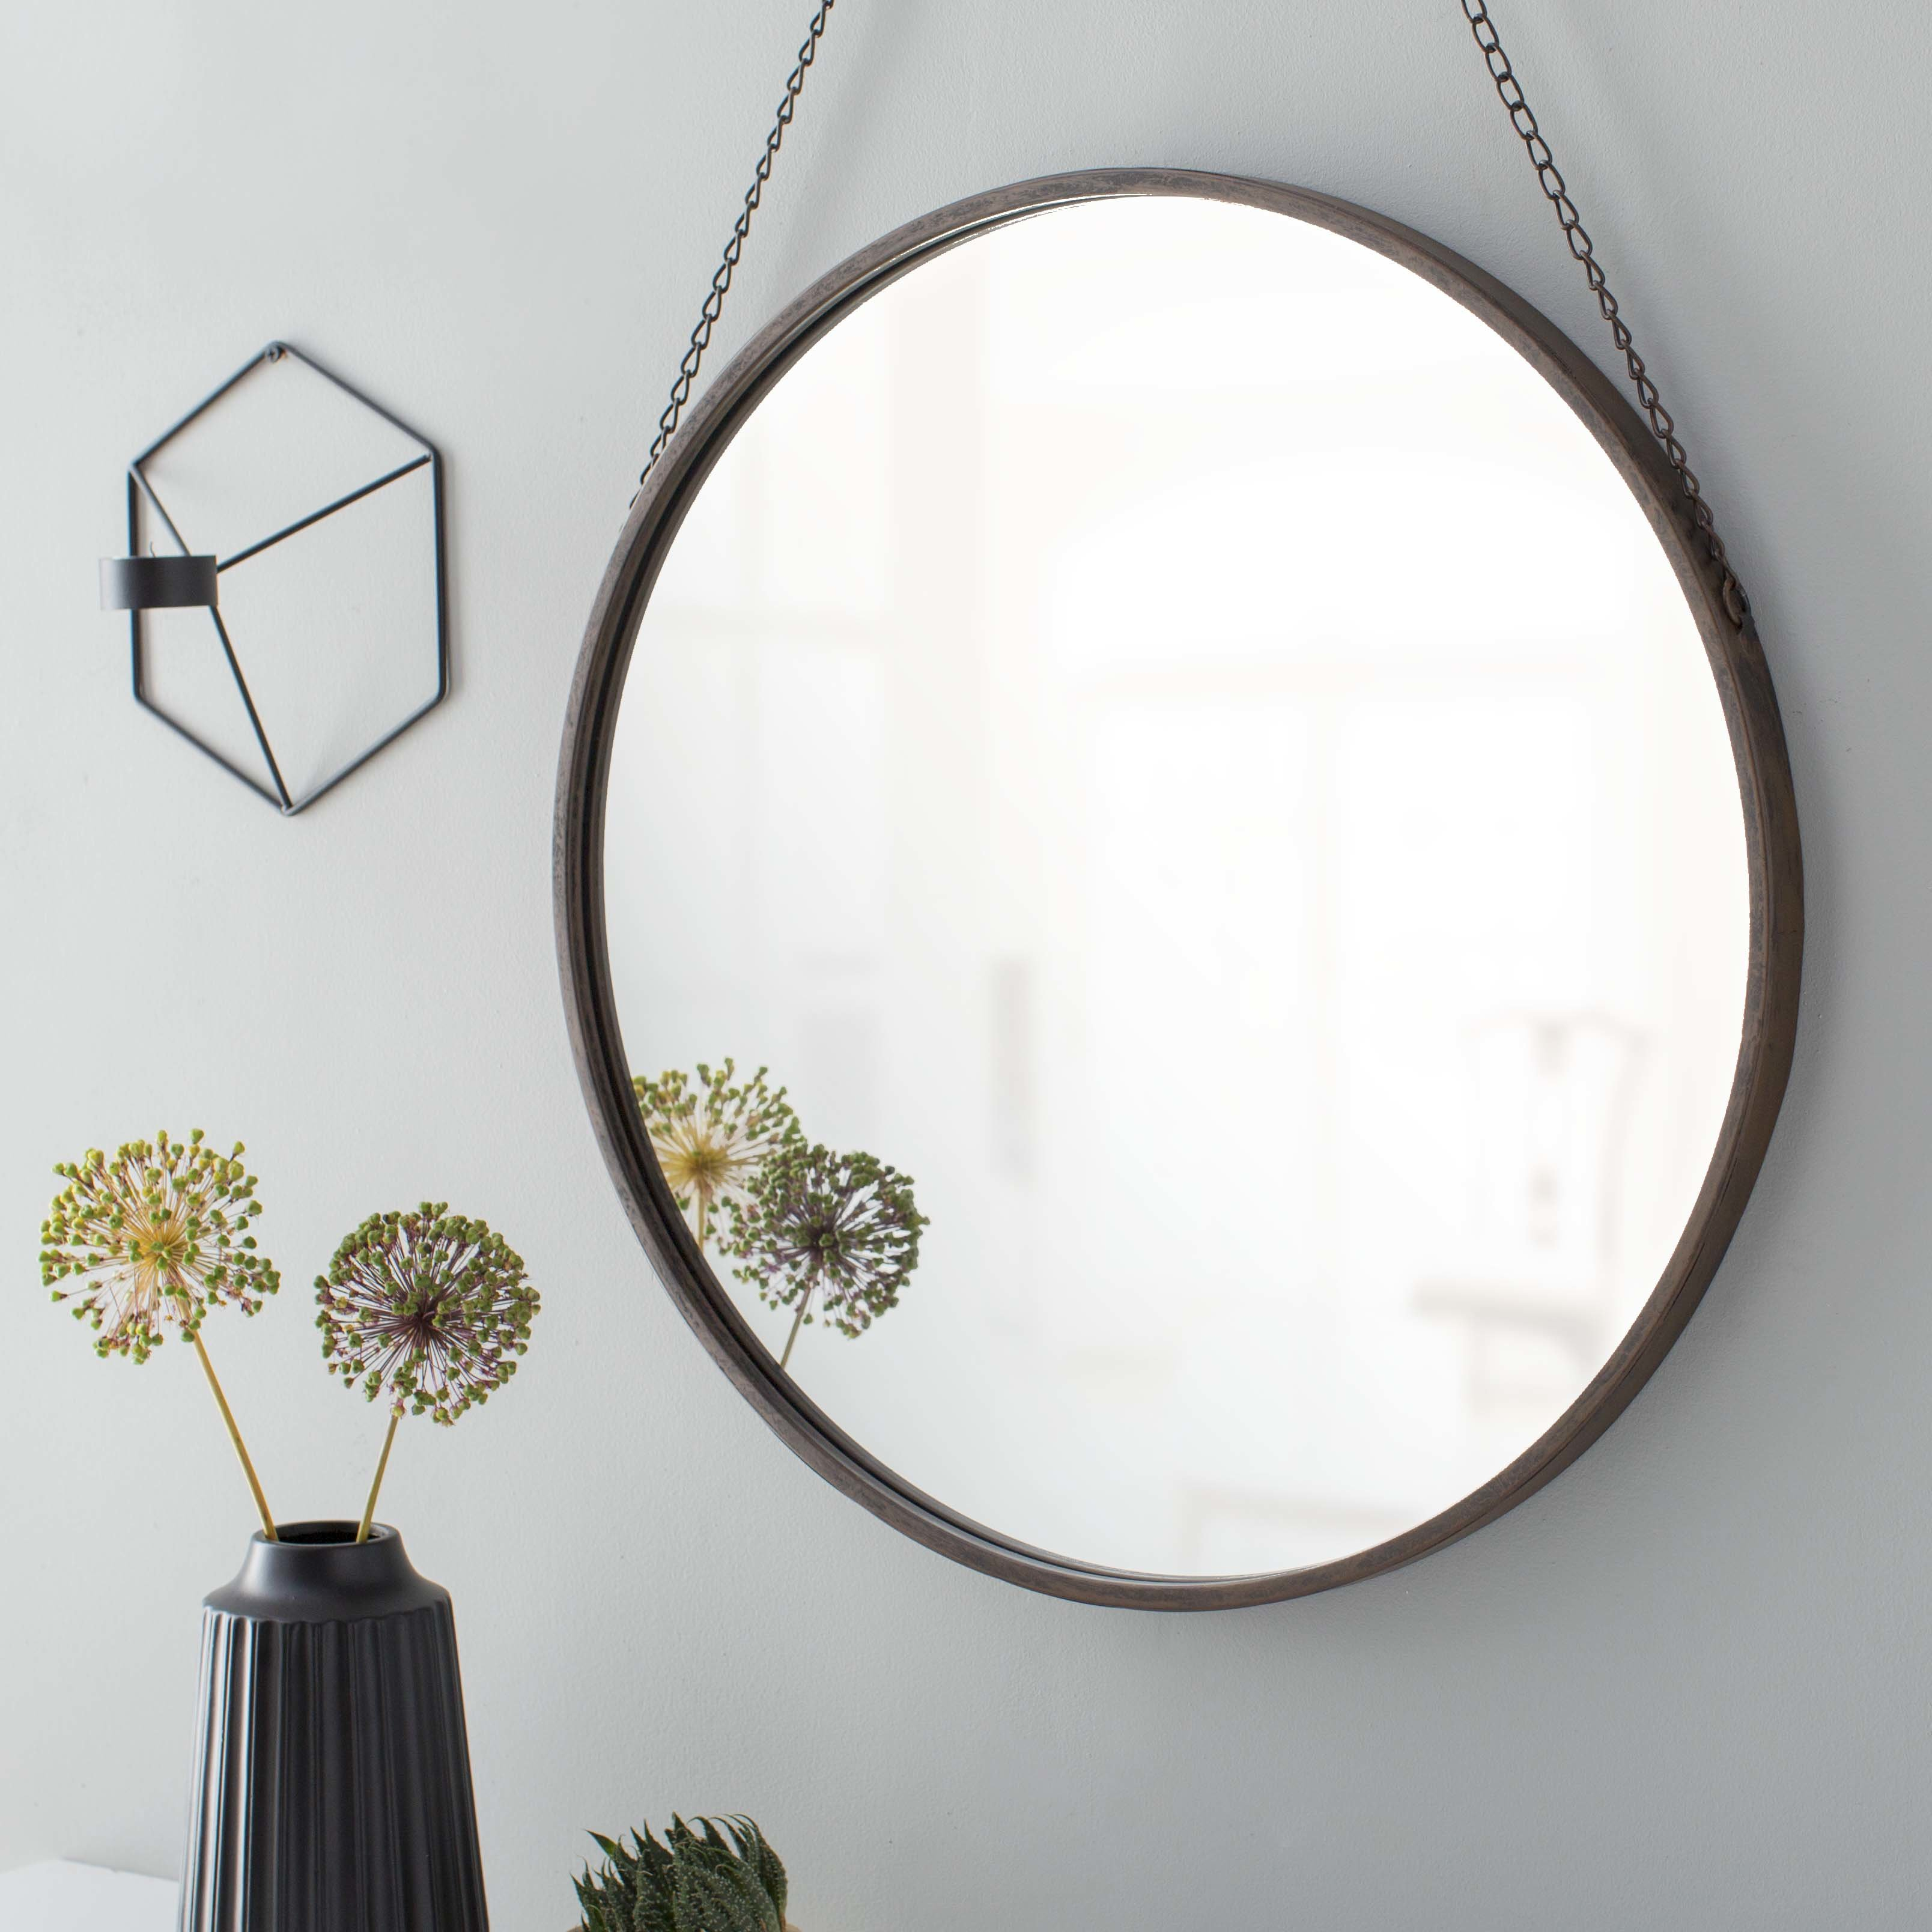 Hardison With Chain Hanger Accent Mirror Within Knott Modern & Contemporary Accent Mirrors (Image 11 of 20)